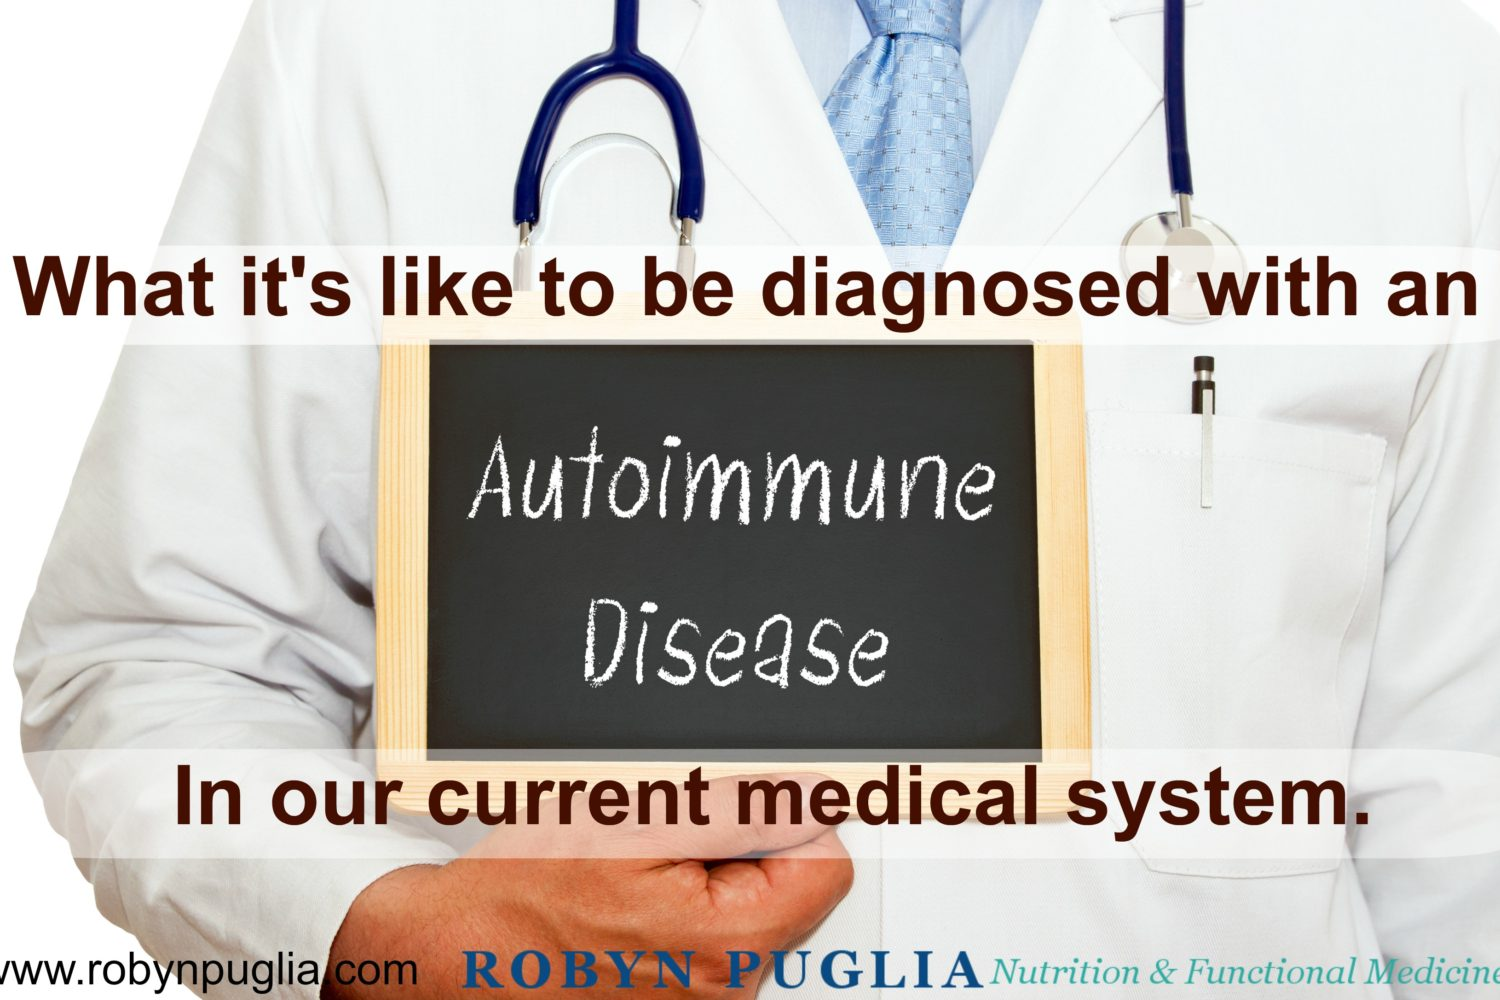 Autoimmune disease and the current medical system